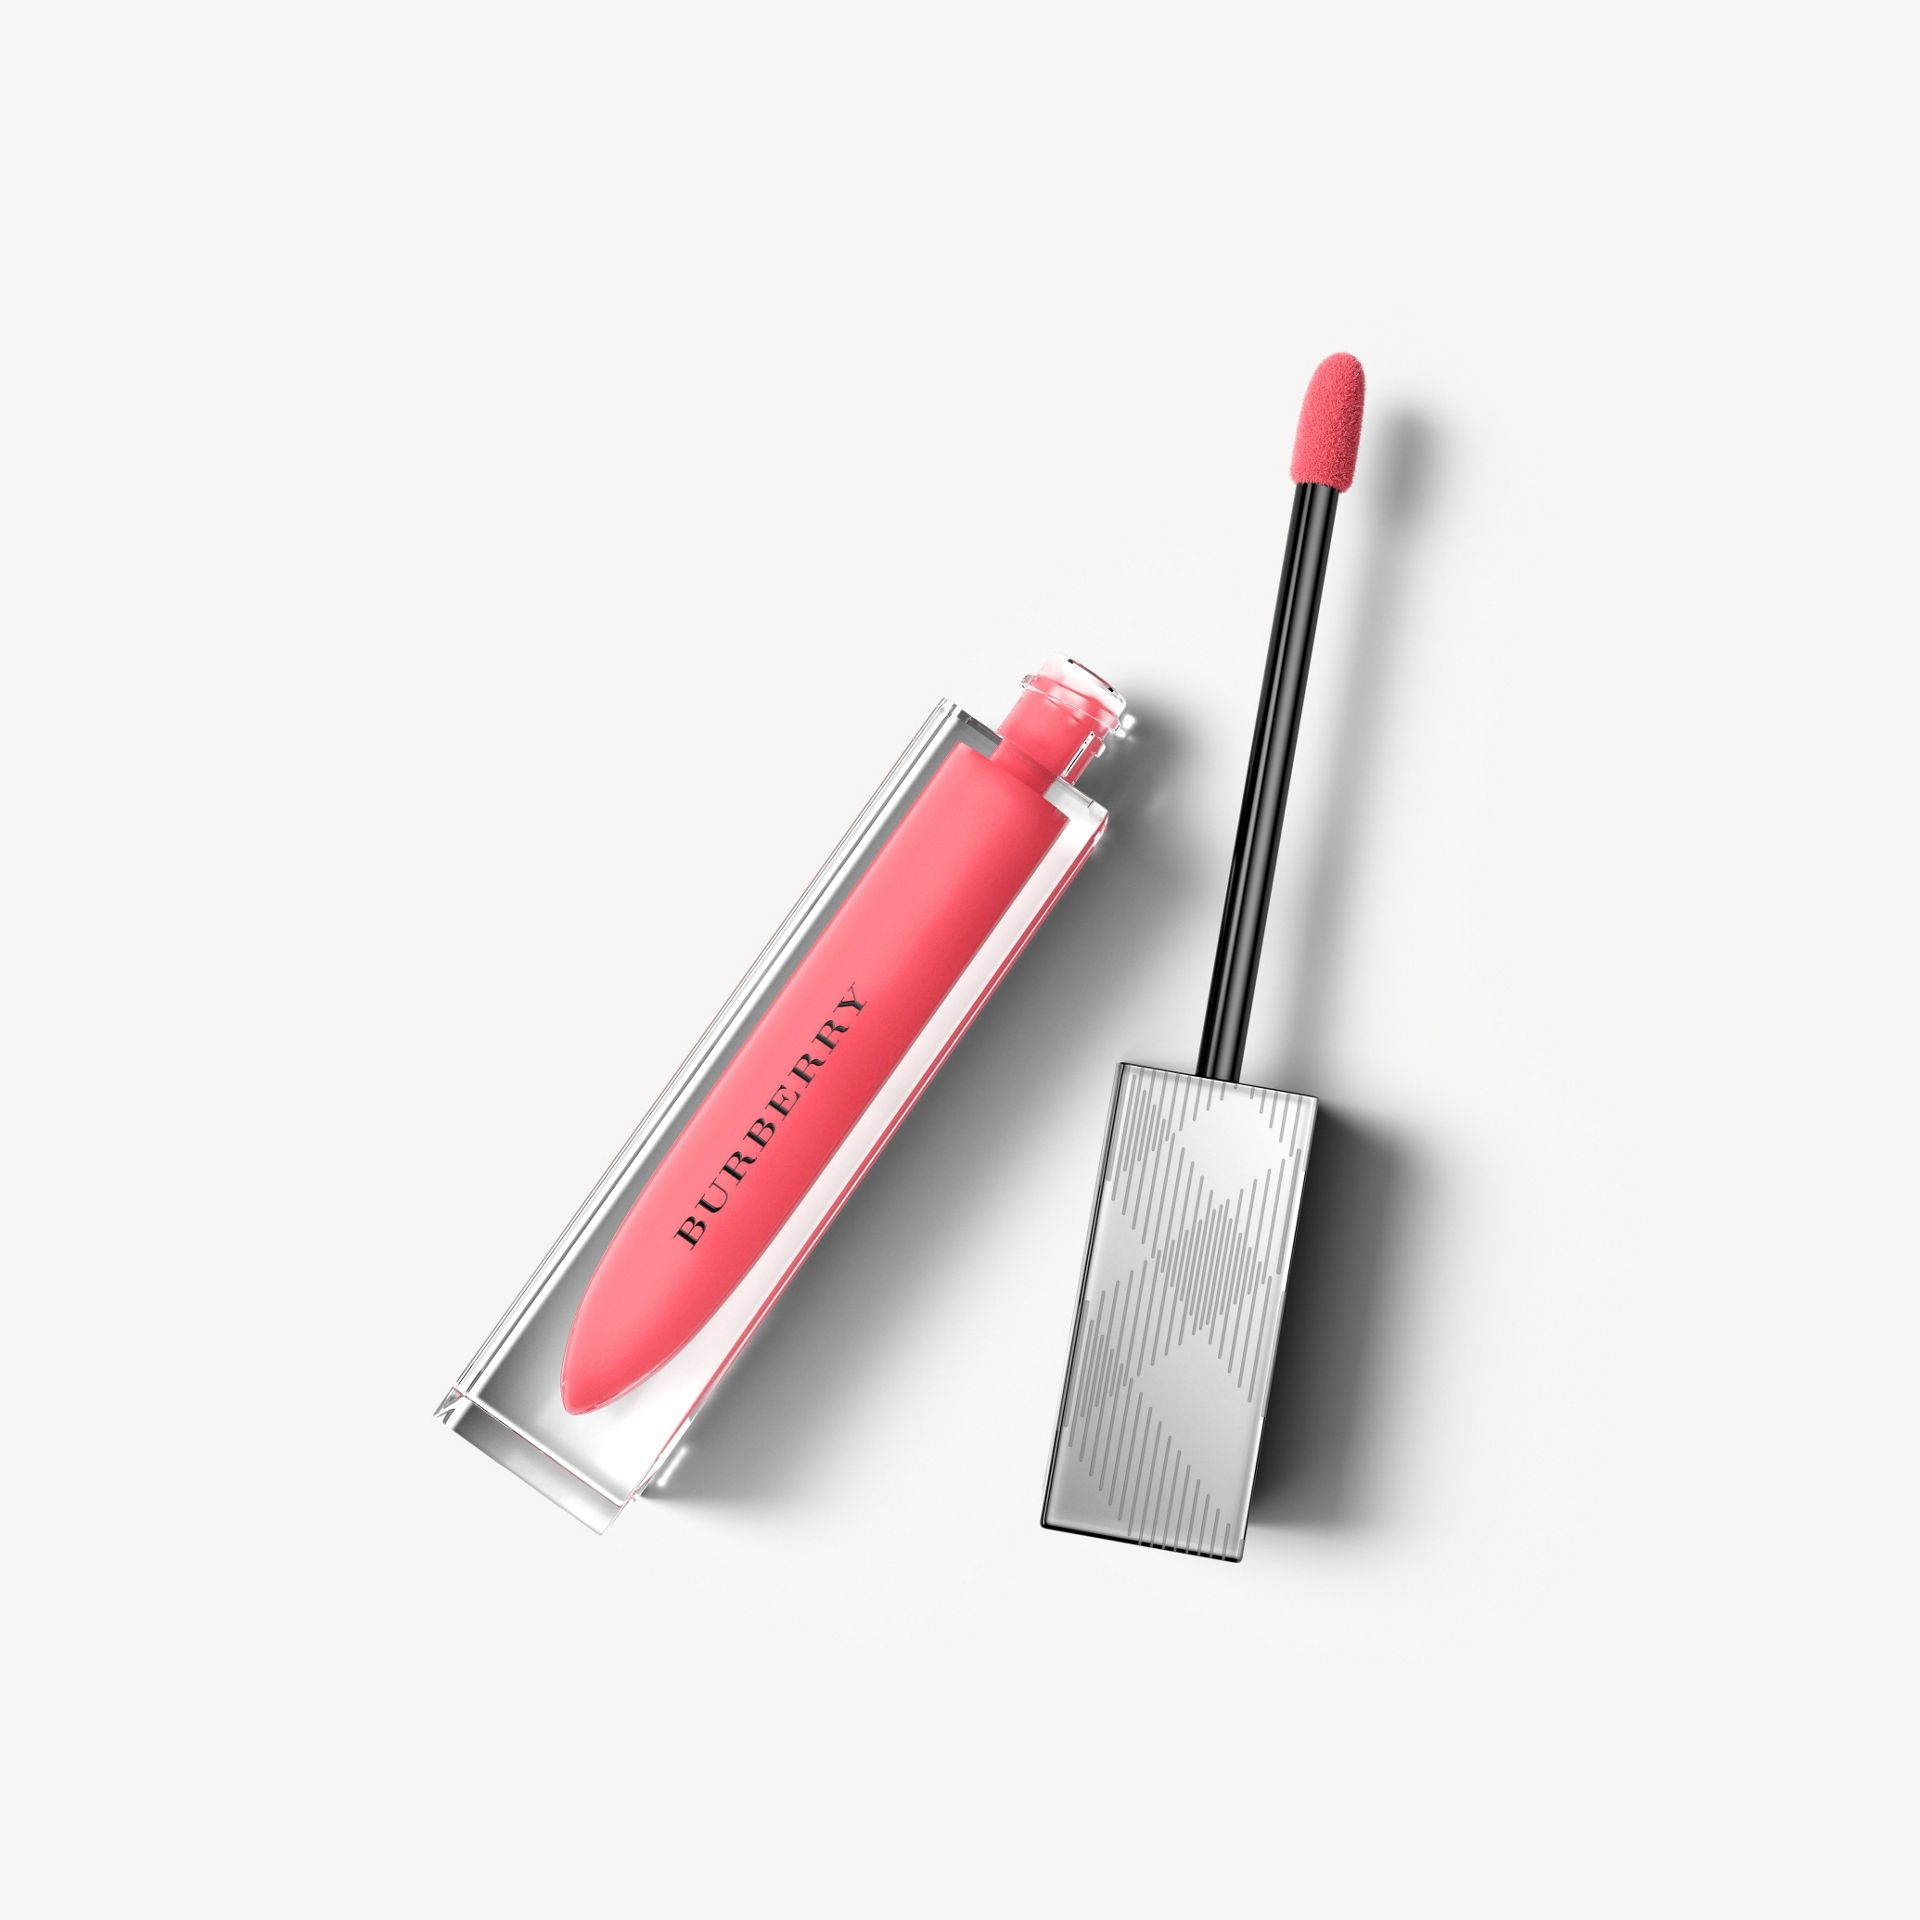 Burberry Kisses Gloss - Mallow Pink No.57 - photo de la galerie 1